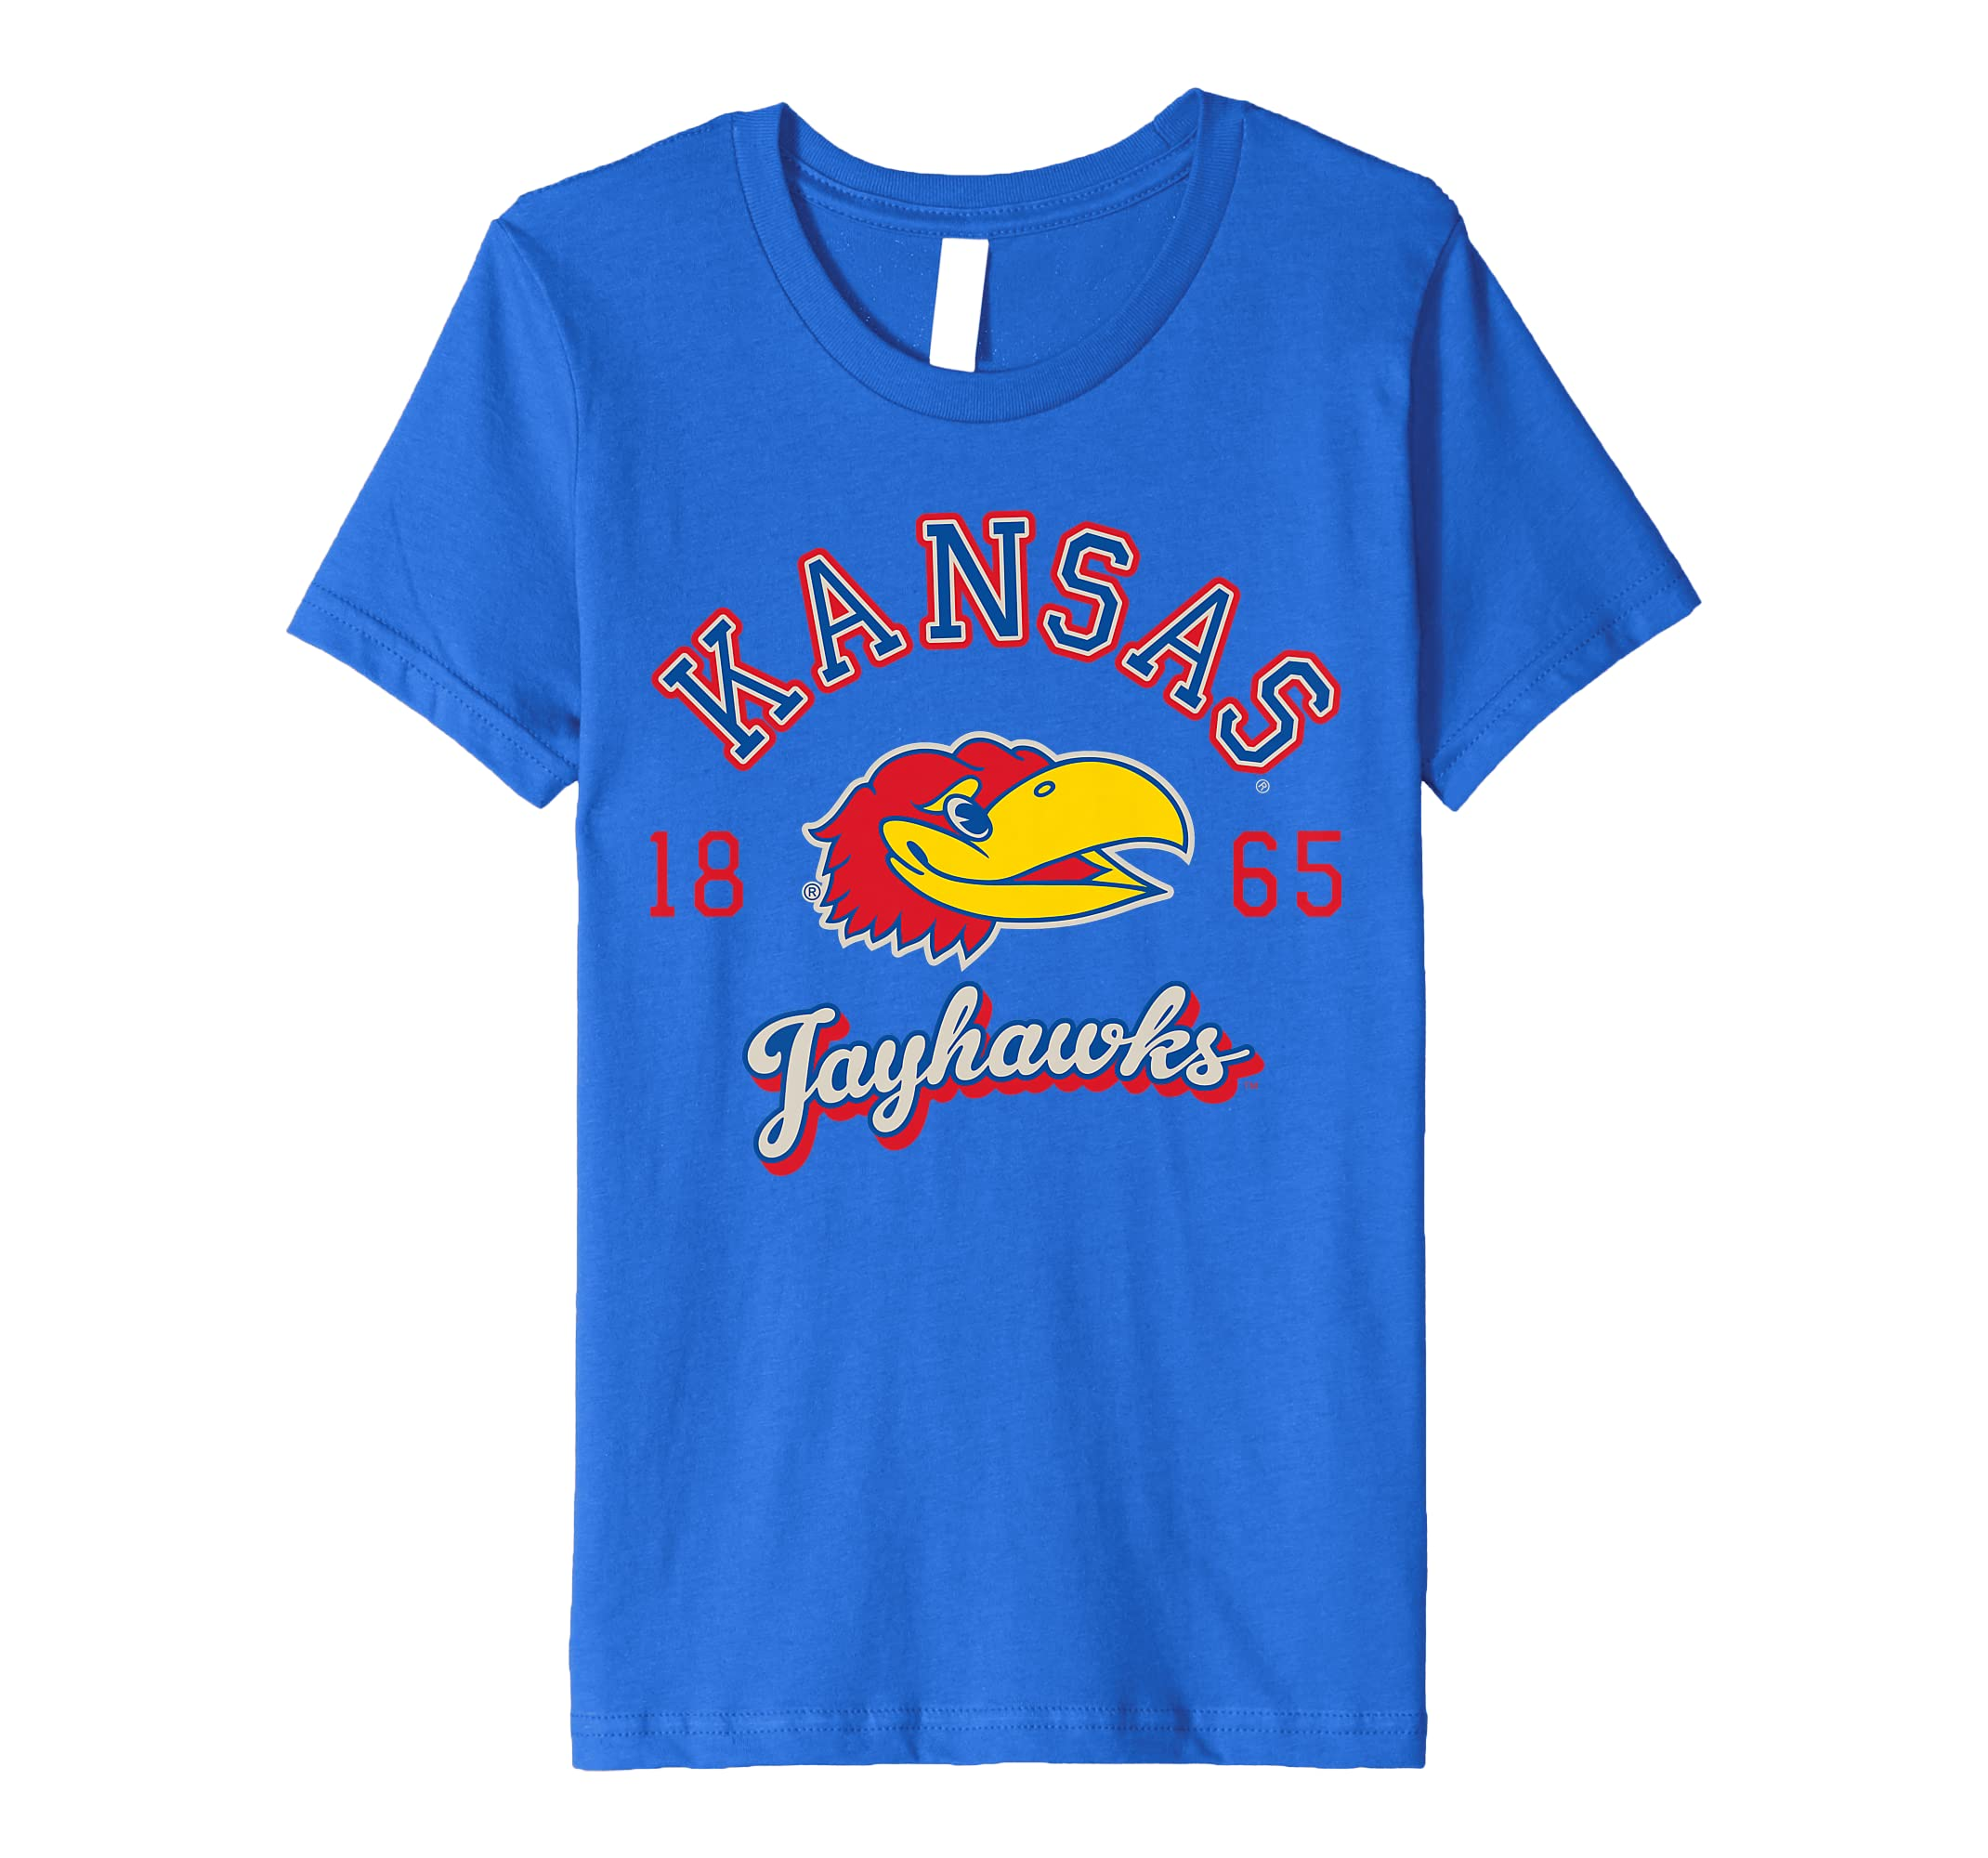 8d6551c6e Amazon.com: Kansas Jayhawks KU NCAA Women's T-Shirt uofk1002: Clothing